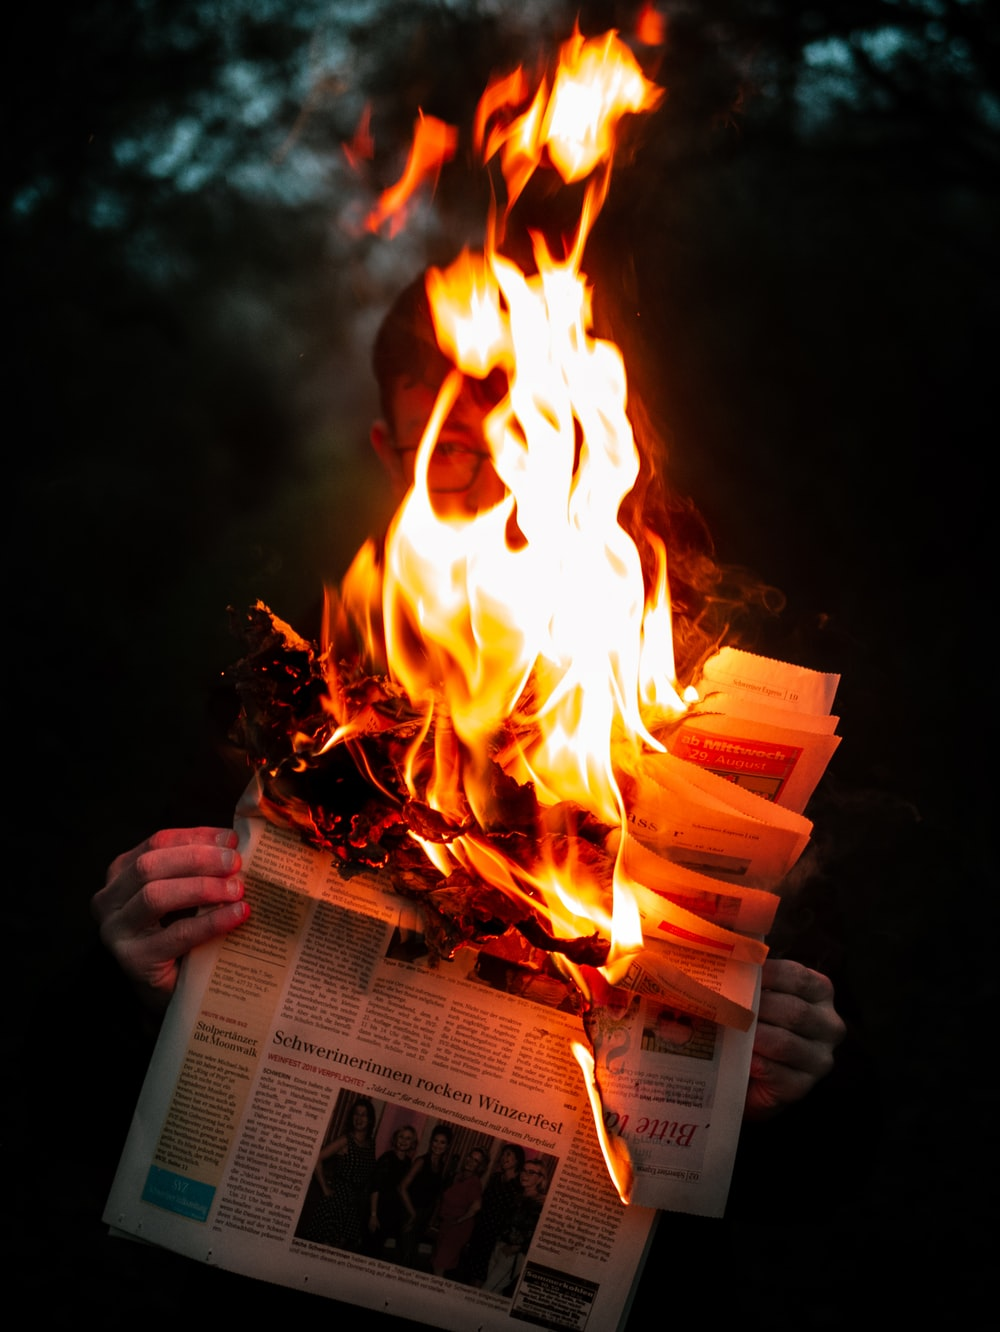 Homepage Newspaper: Person Holding Burning Newspaper Photo